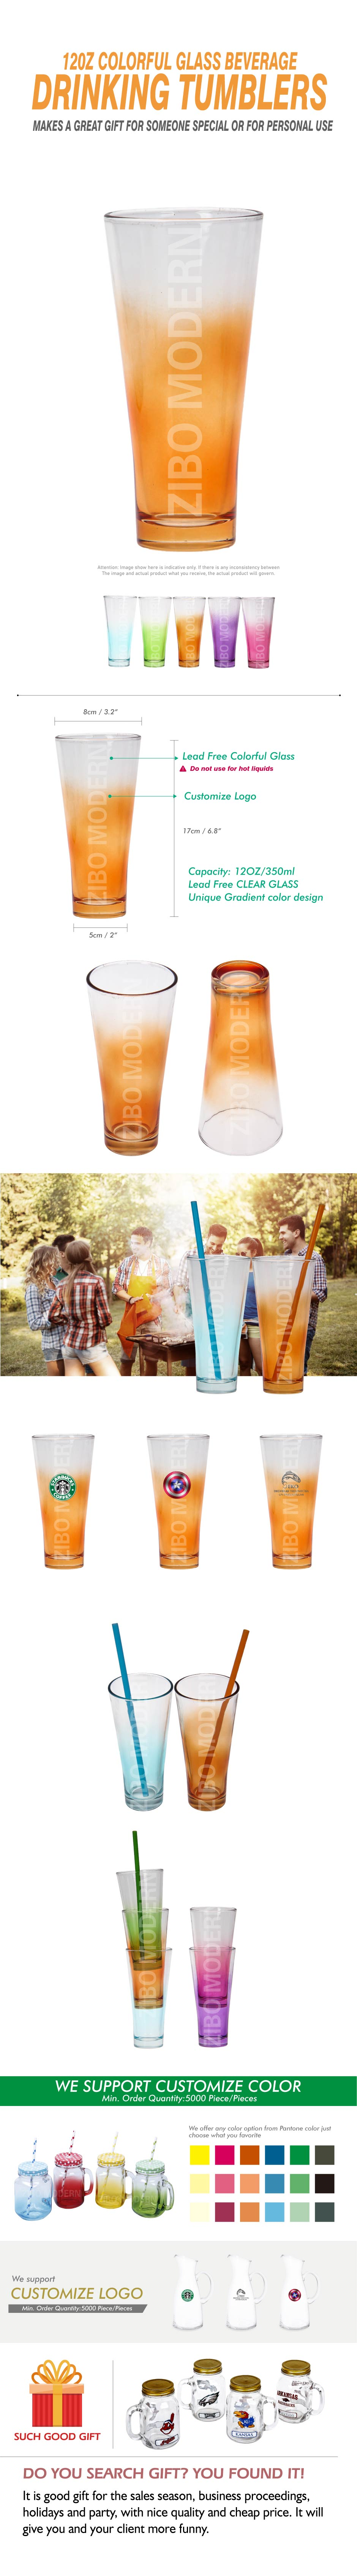 120Z Colorful Glass Beverage Drinking Tumblers Makes a great gift for someone special or for personal use